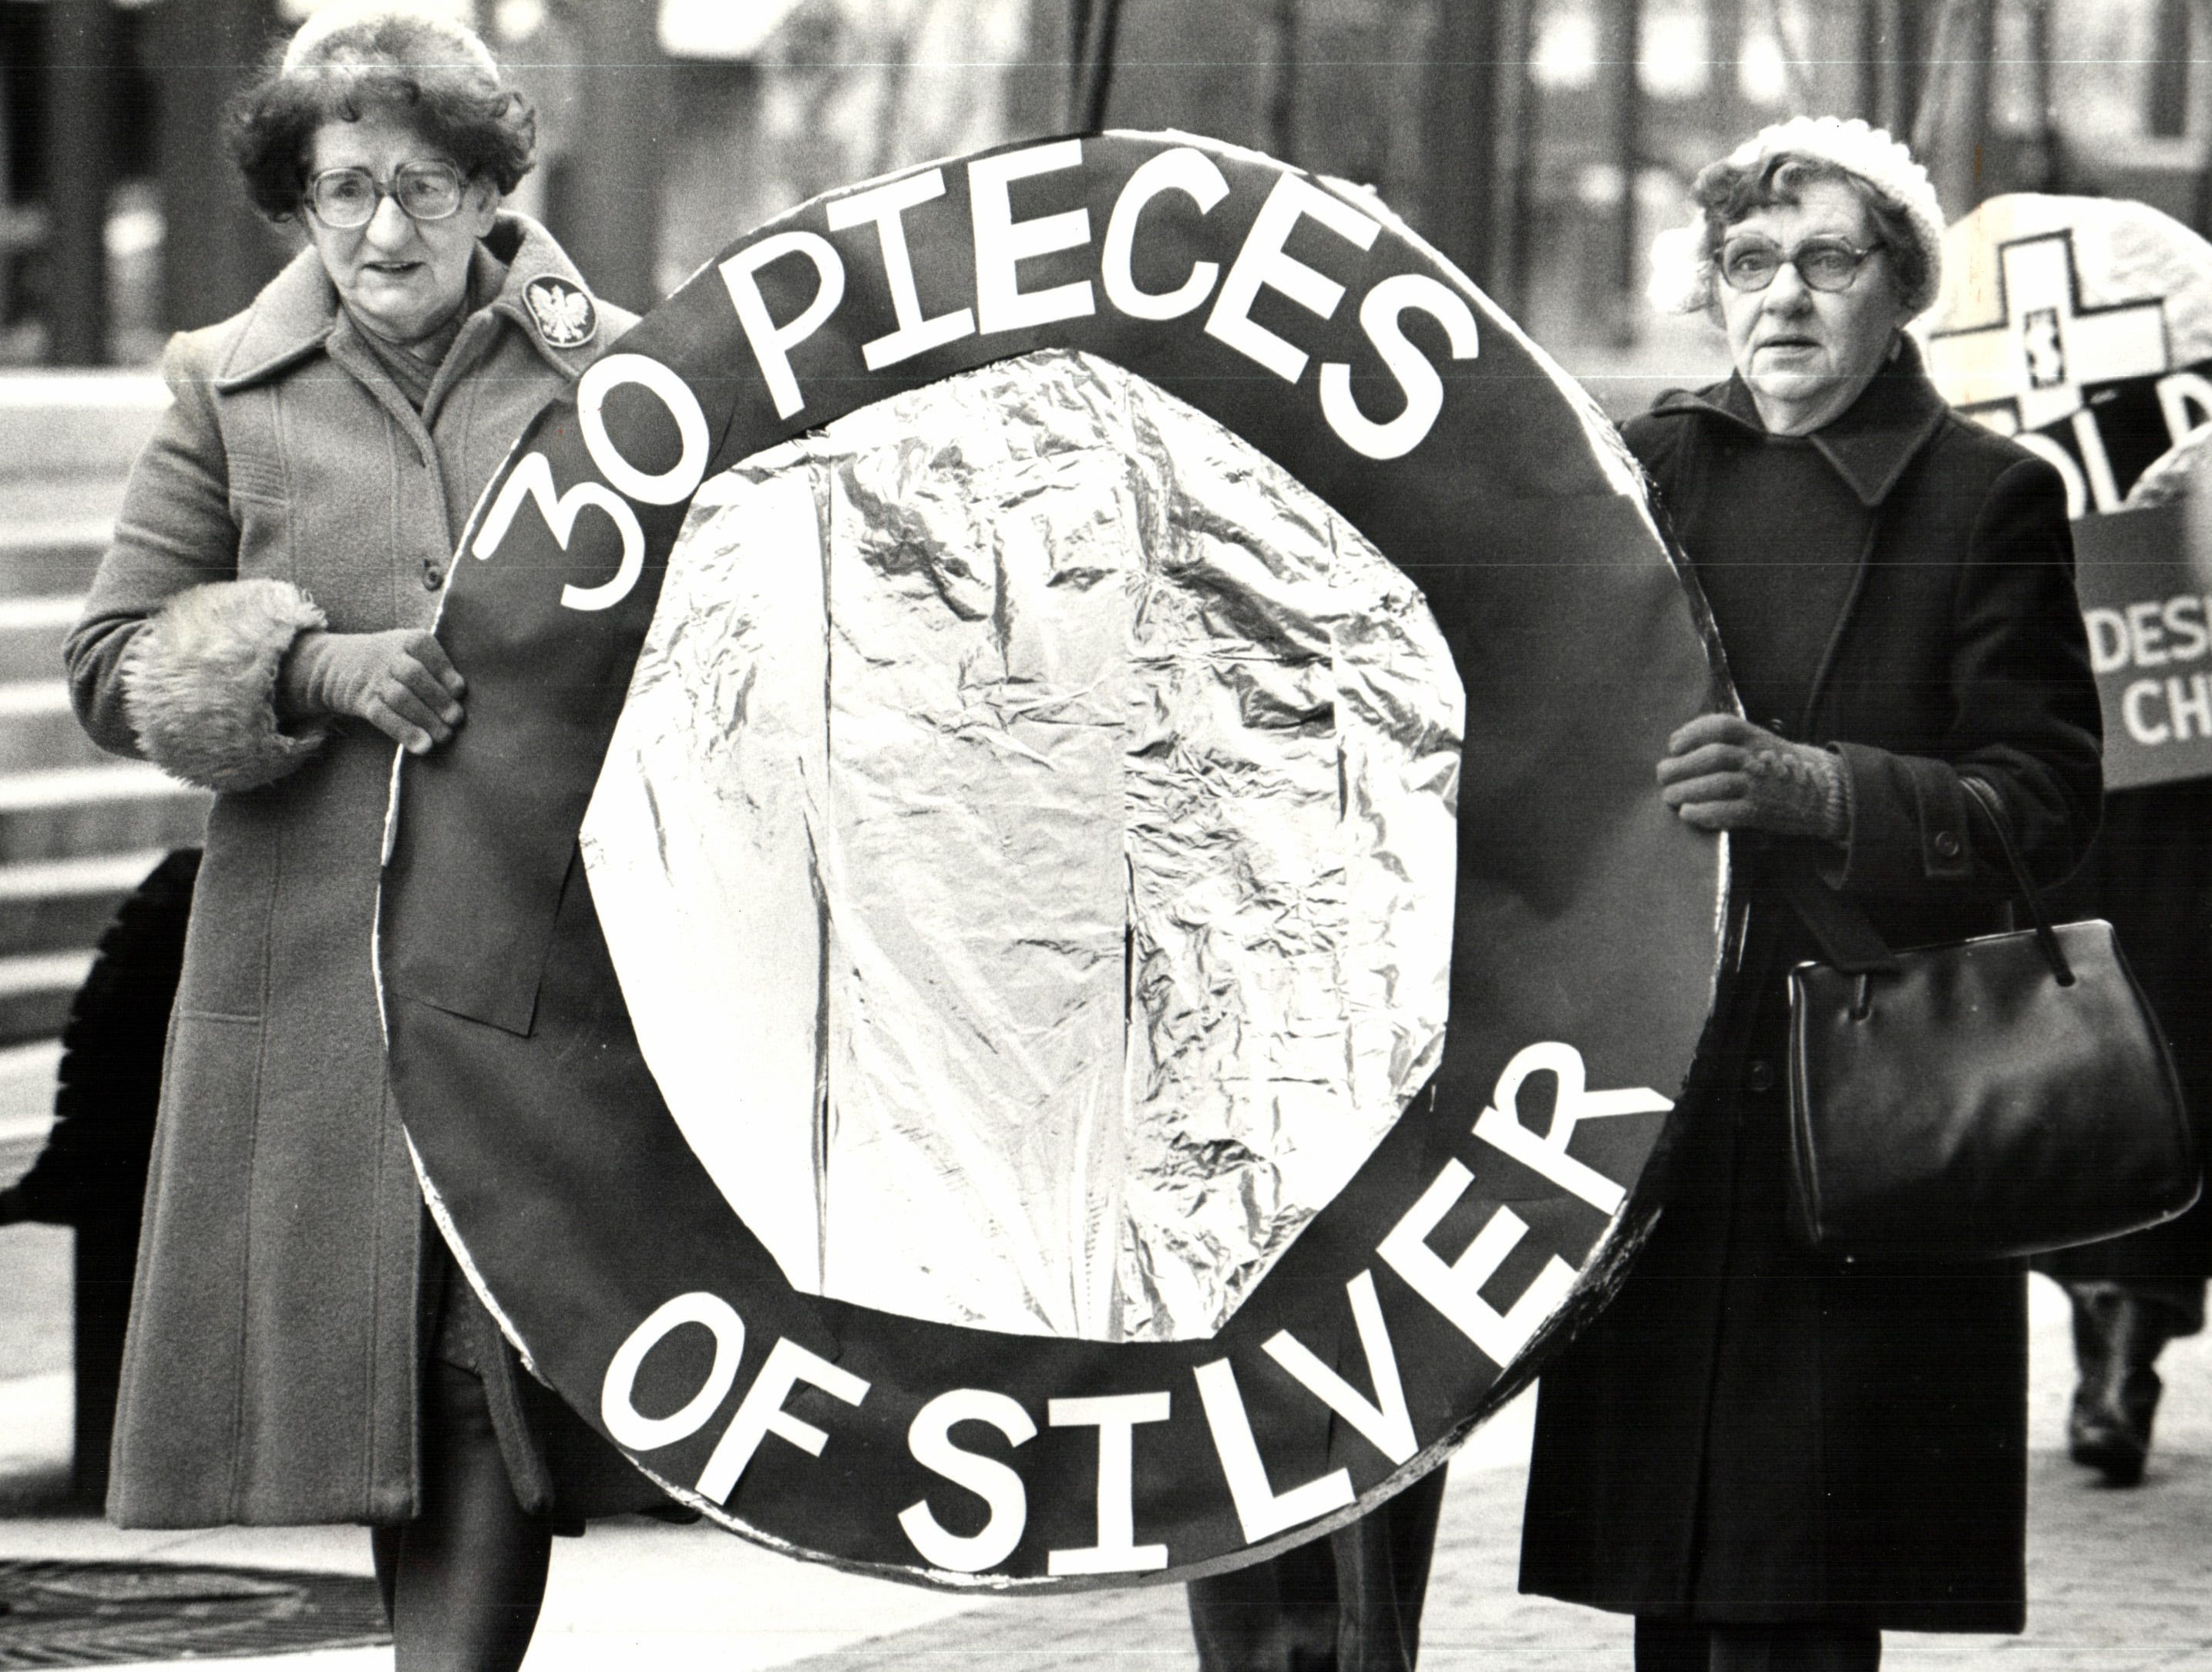 Long-time church members Barbara M. Sokol (left) and Ann Dolence march to protest the proposed demolition of the Church of the Immaculate Conception and the razing of the surrounding neighborhood of Poletown in order to build a new General Motors plant on the site.